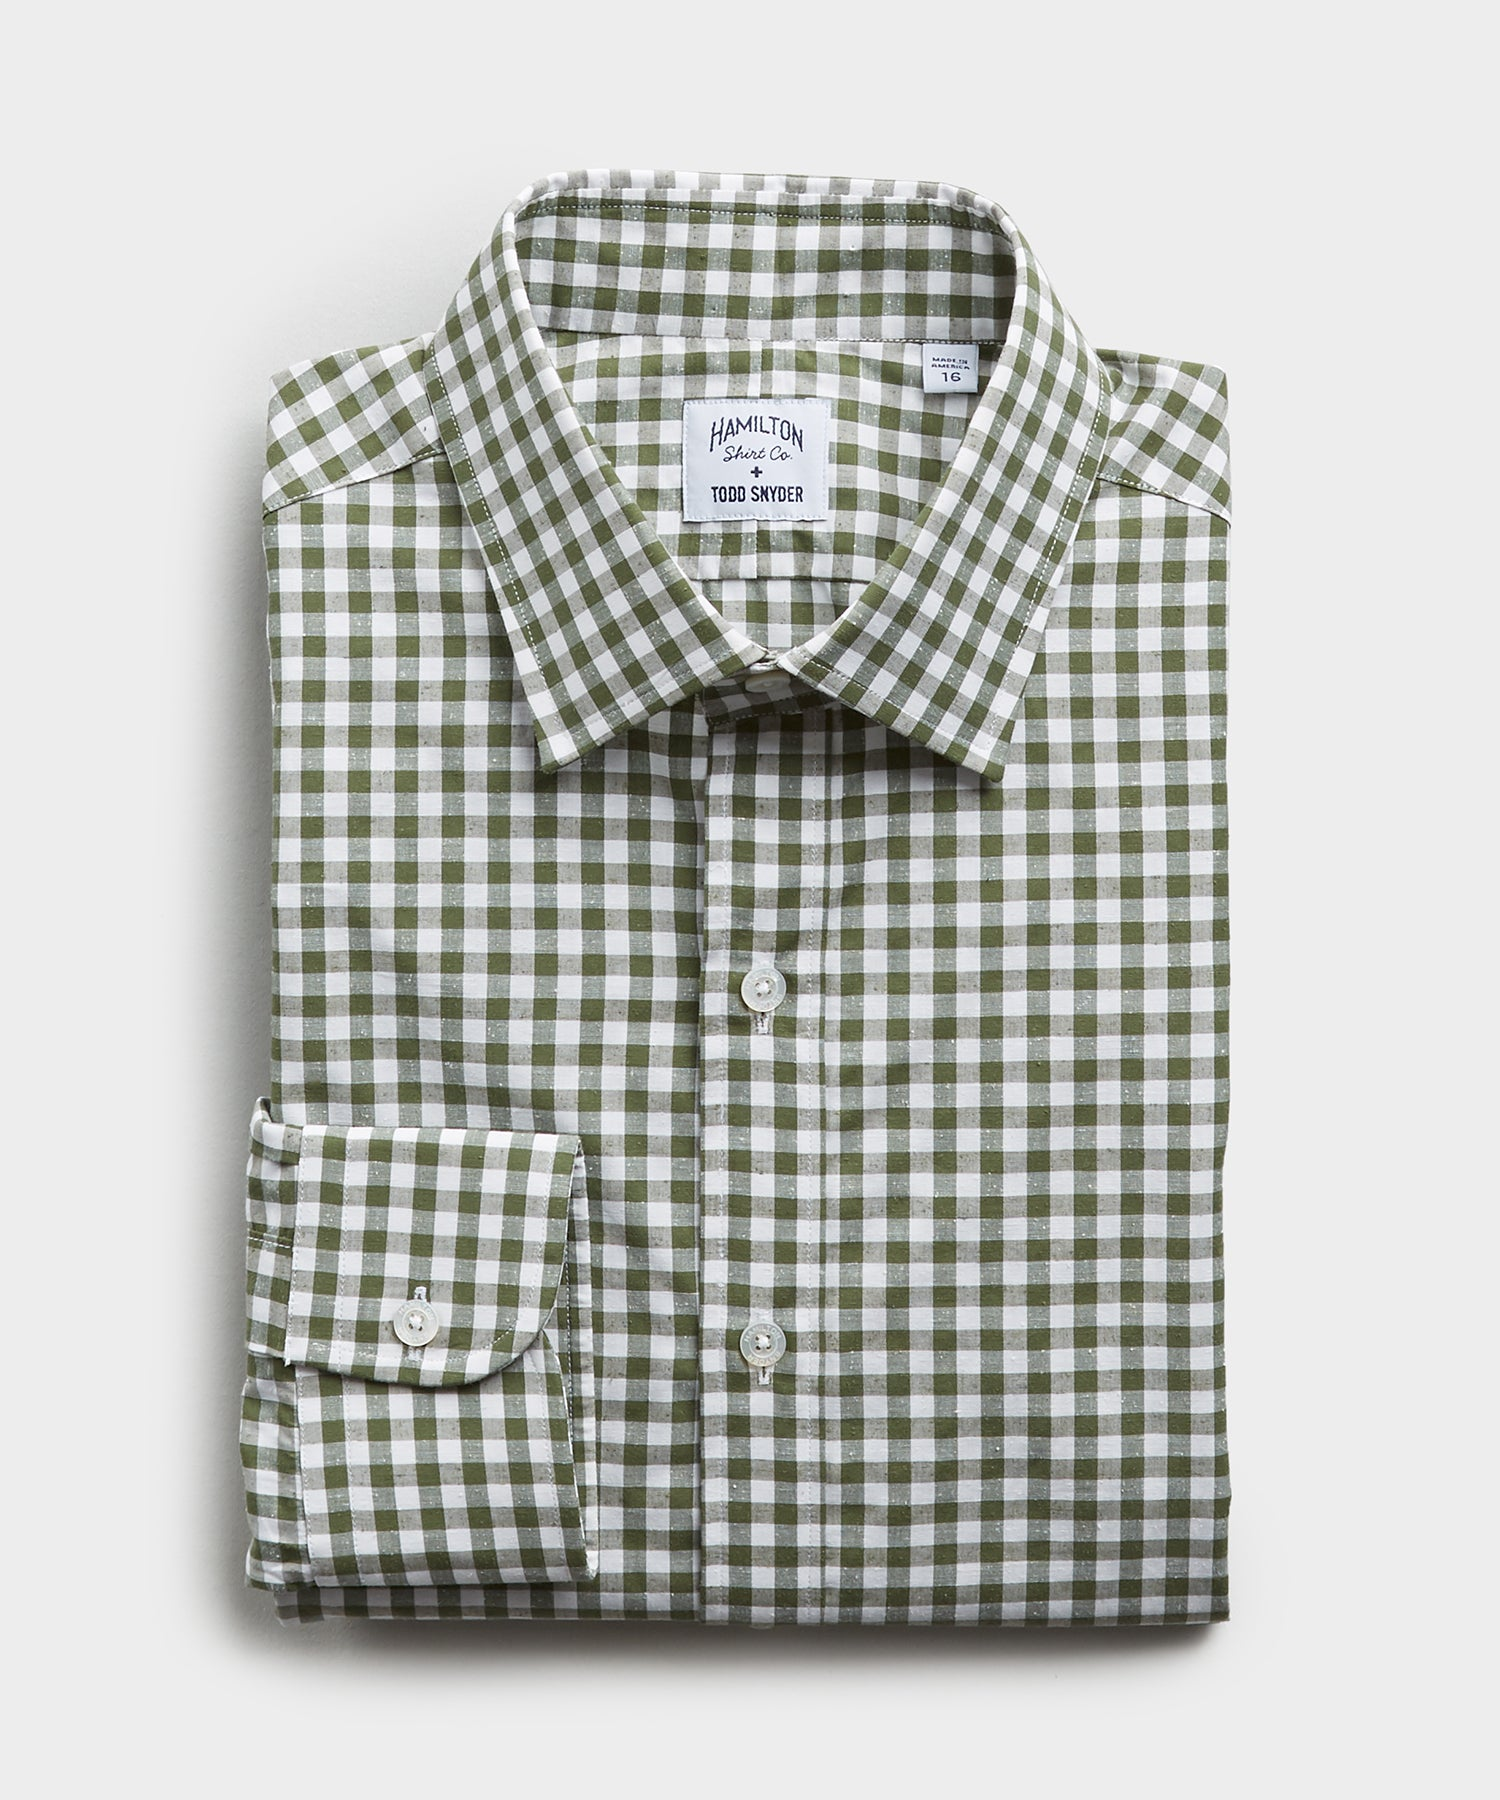 Made in the USA Hamilton + Todd Snyder Gingham Plaid Shirt Green